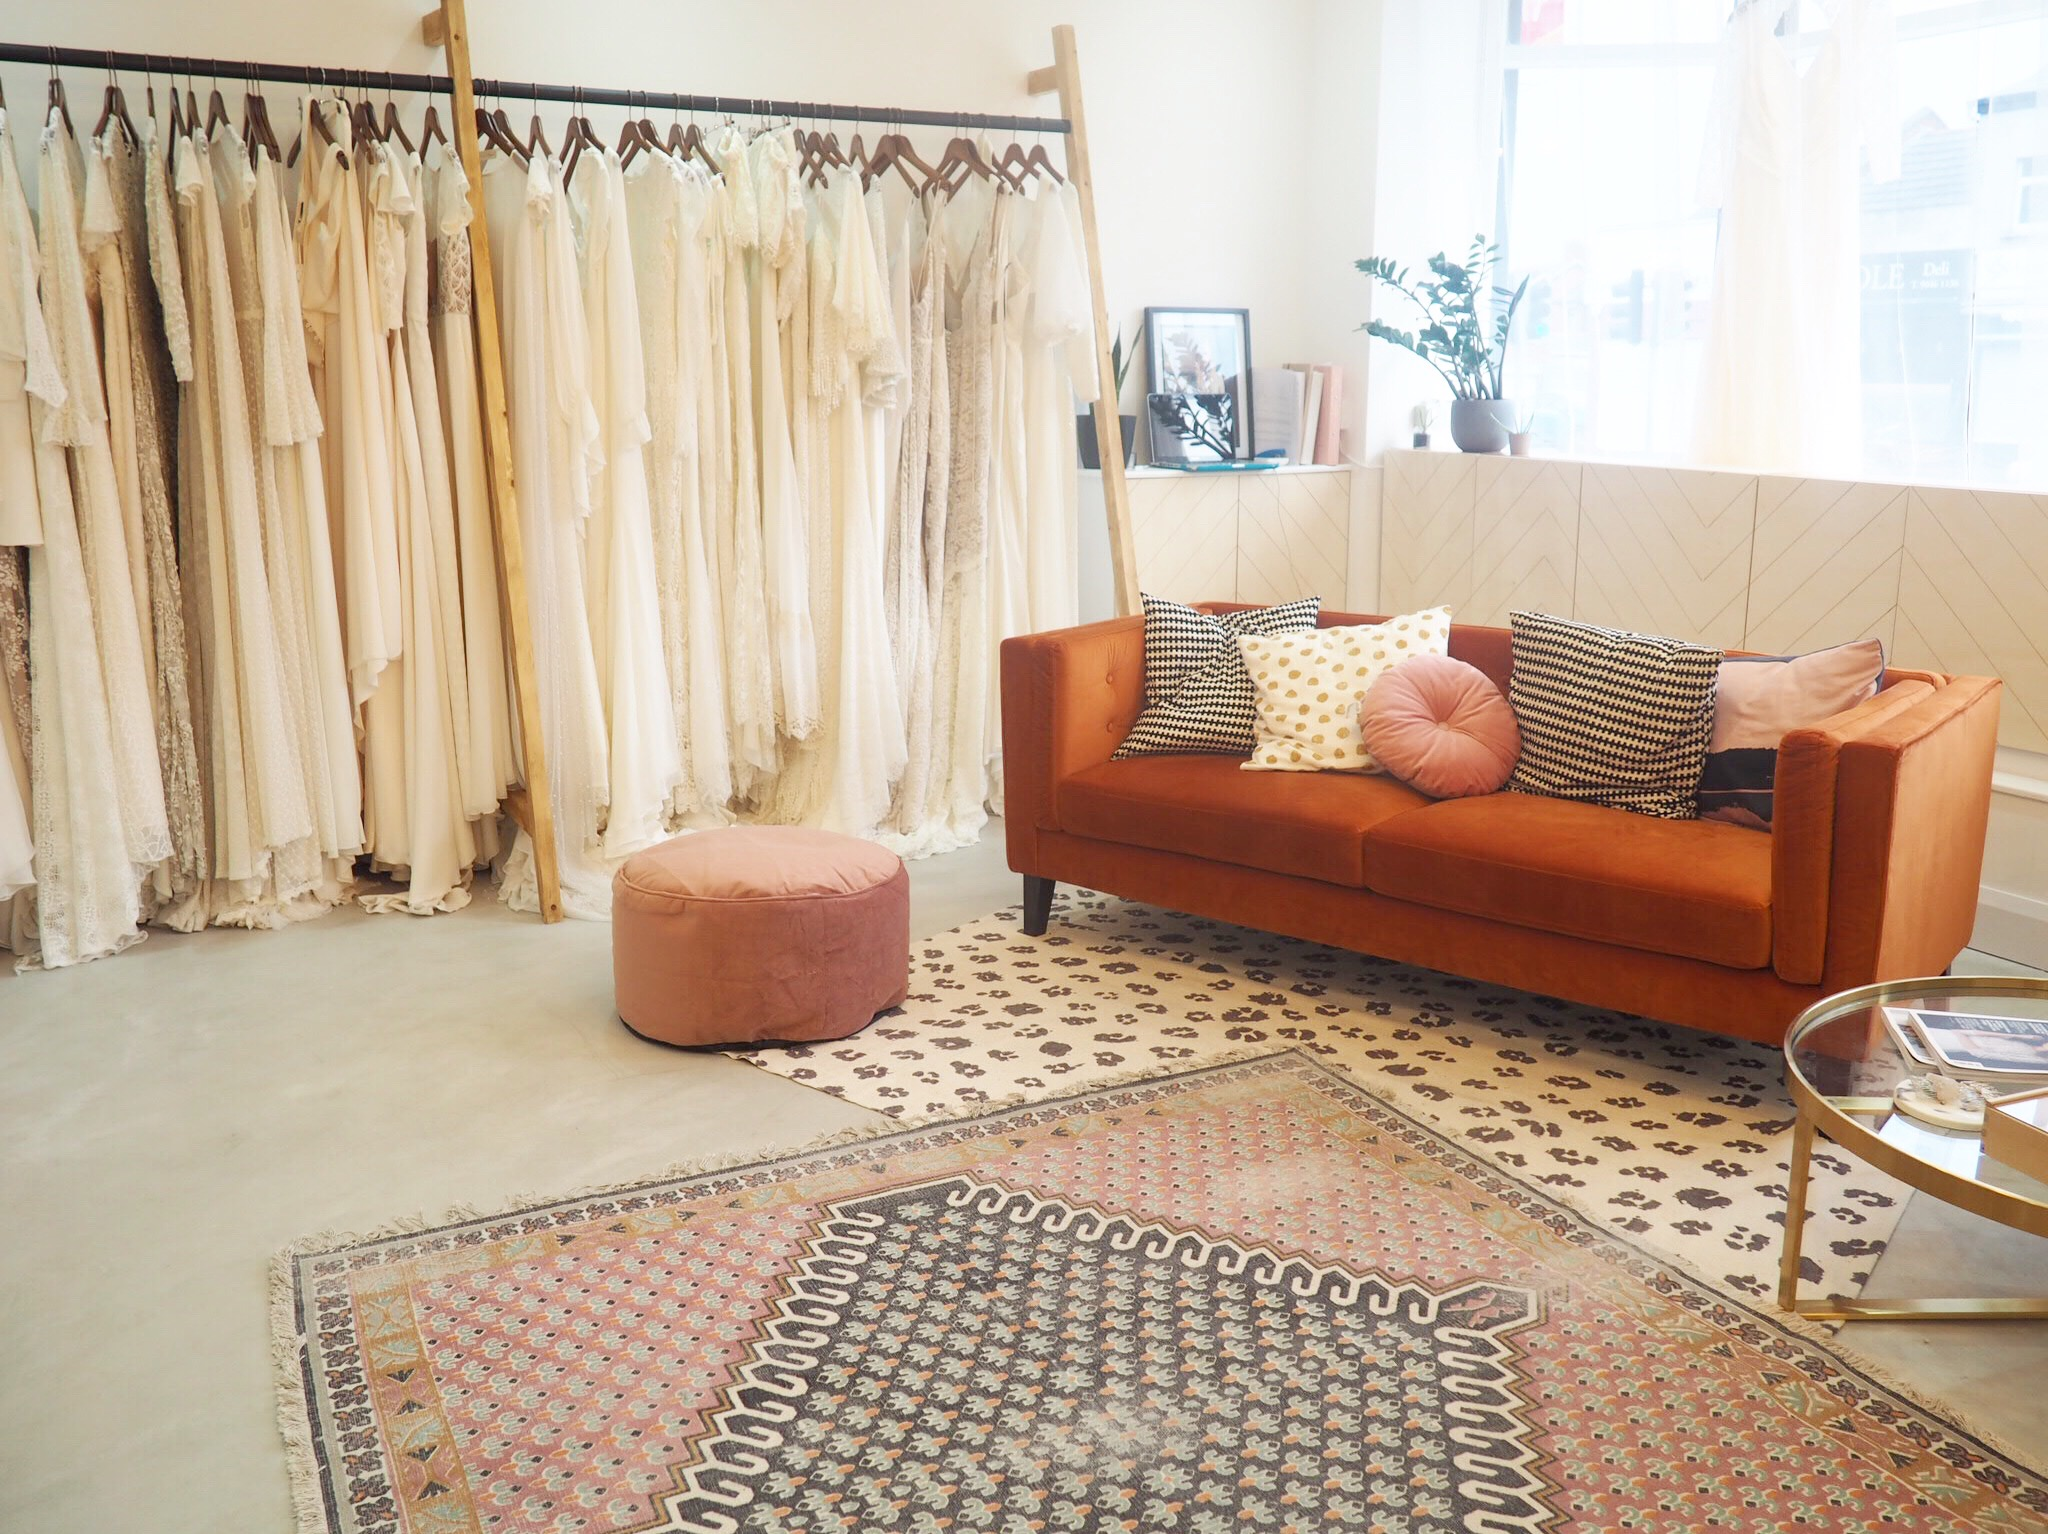 Relaxed vibes all round while you chose your favourite dresses to try on at ARCHIVE 12